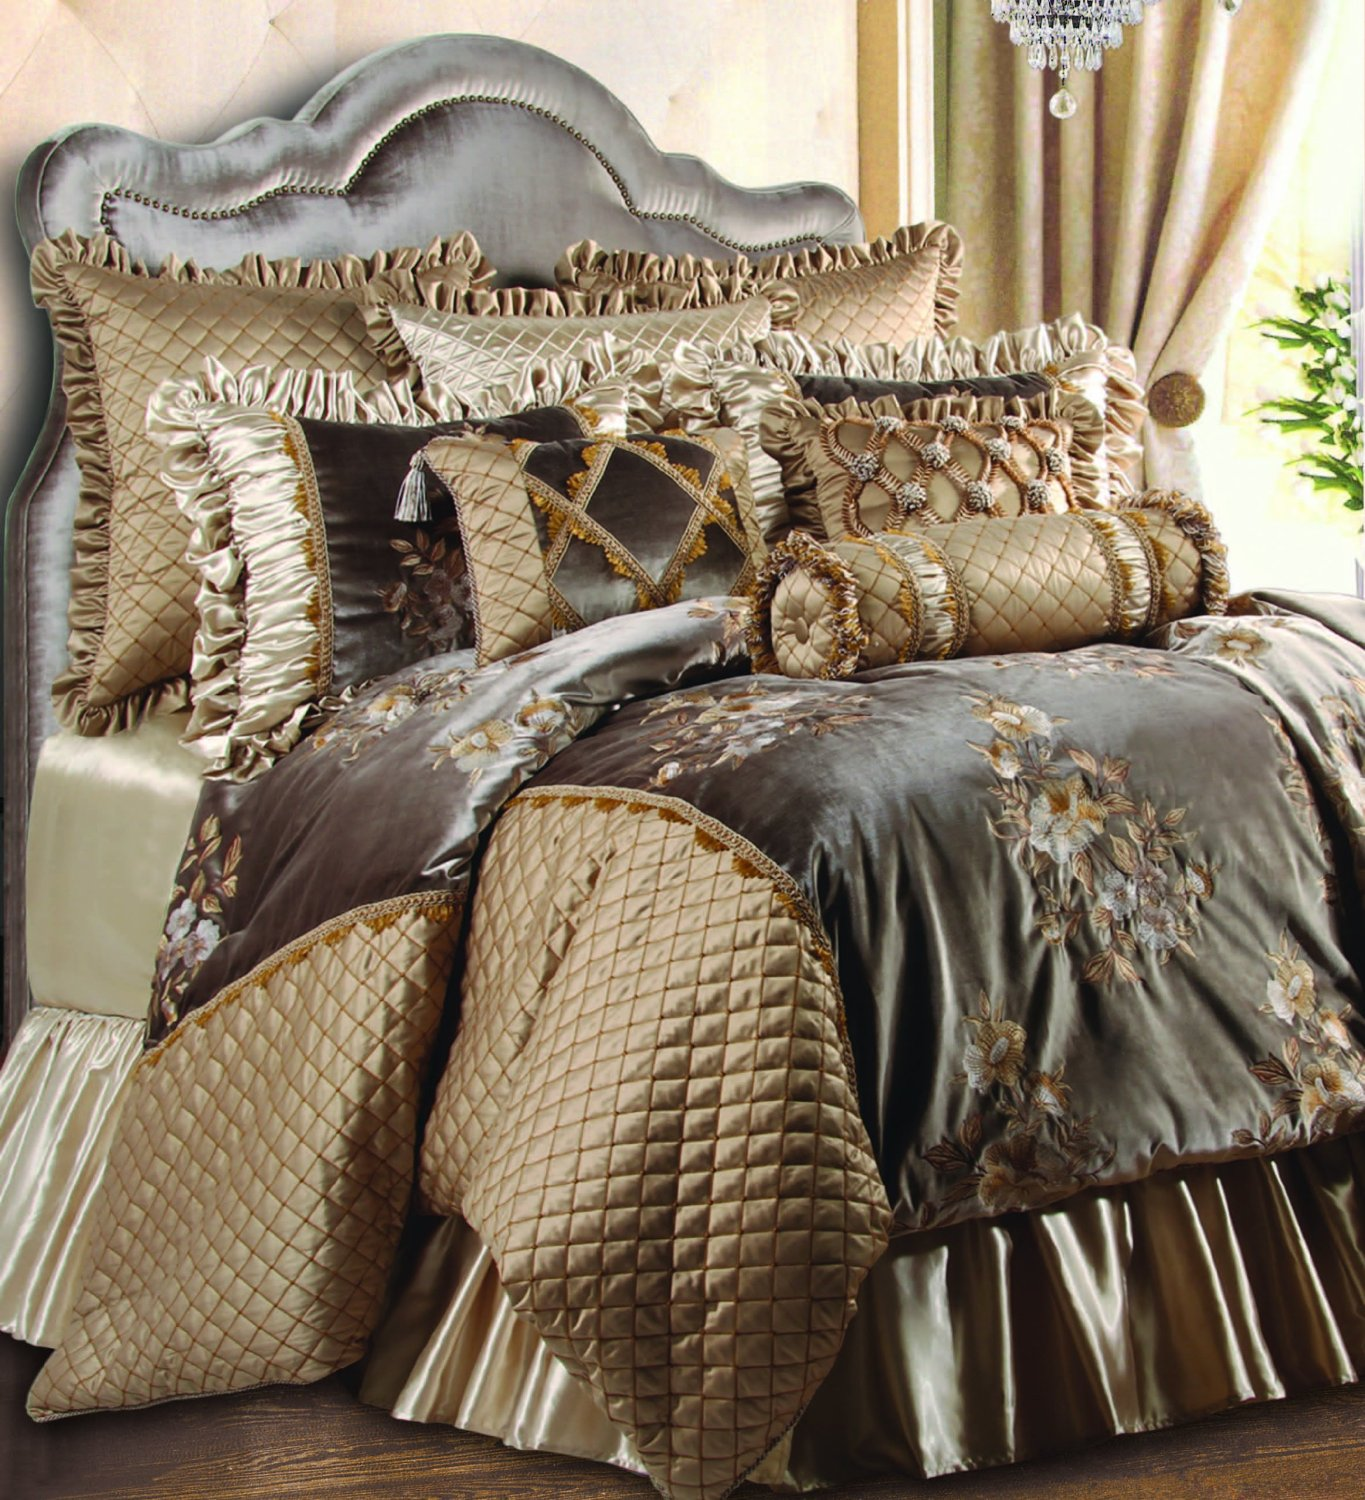 Bedroom Sets High End high end linens exhibiting luxurious vibes in your bedroom